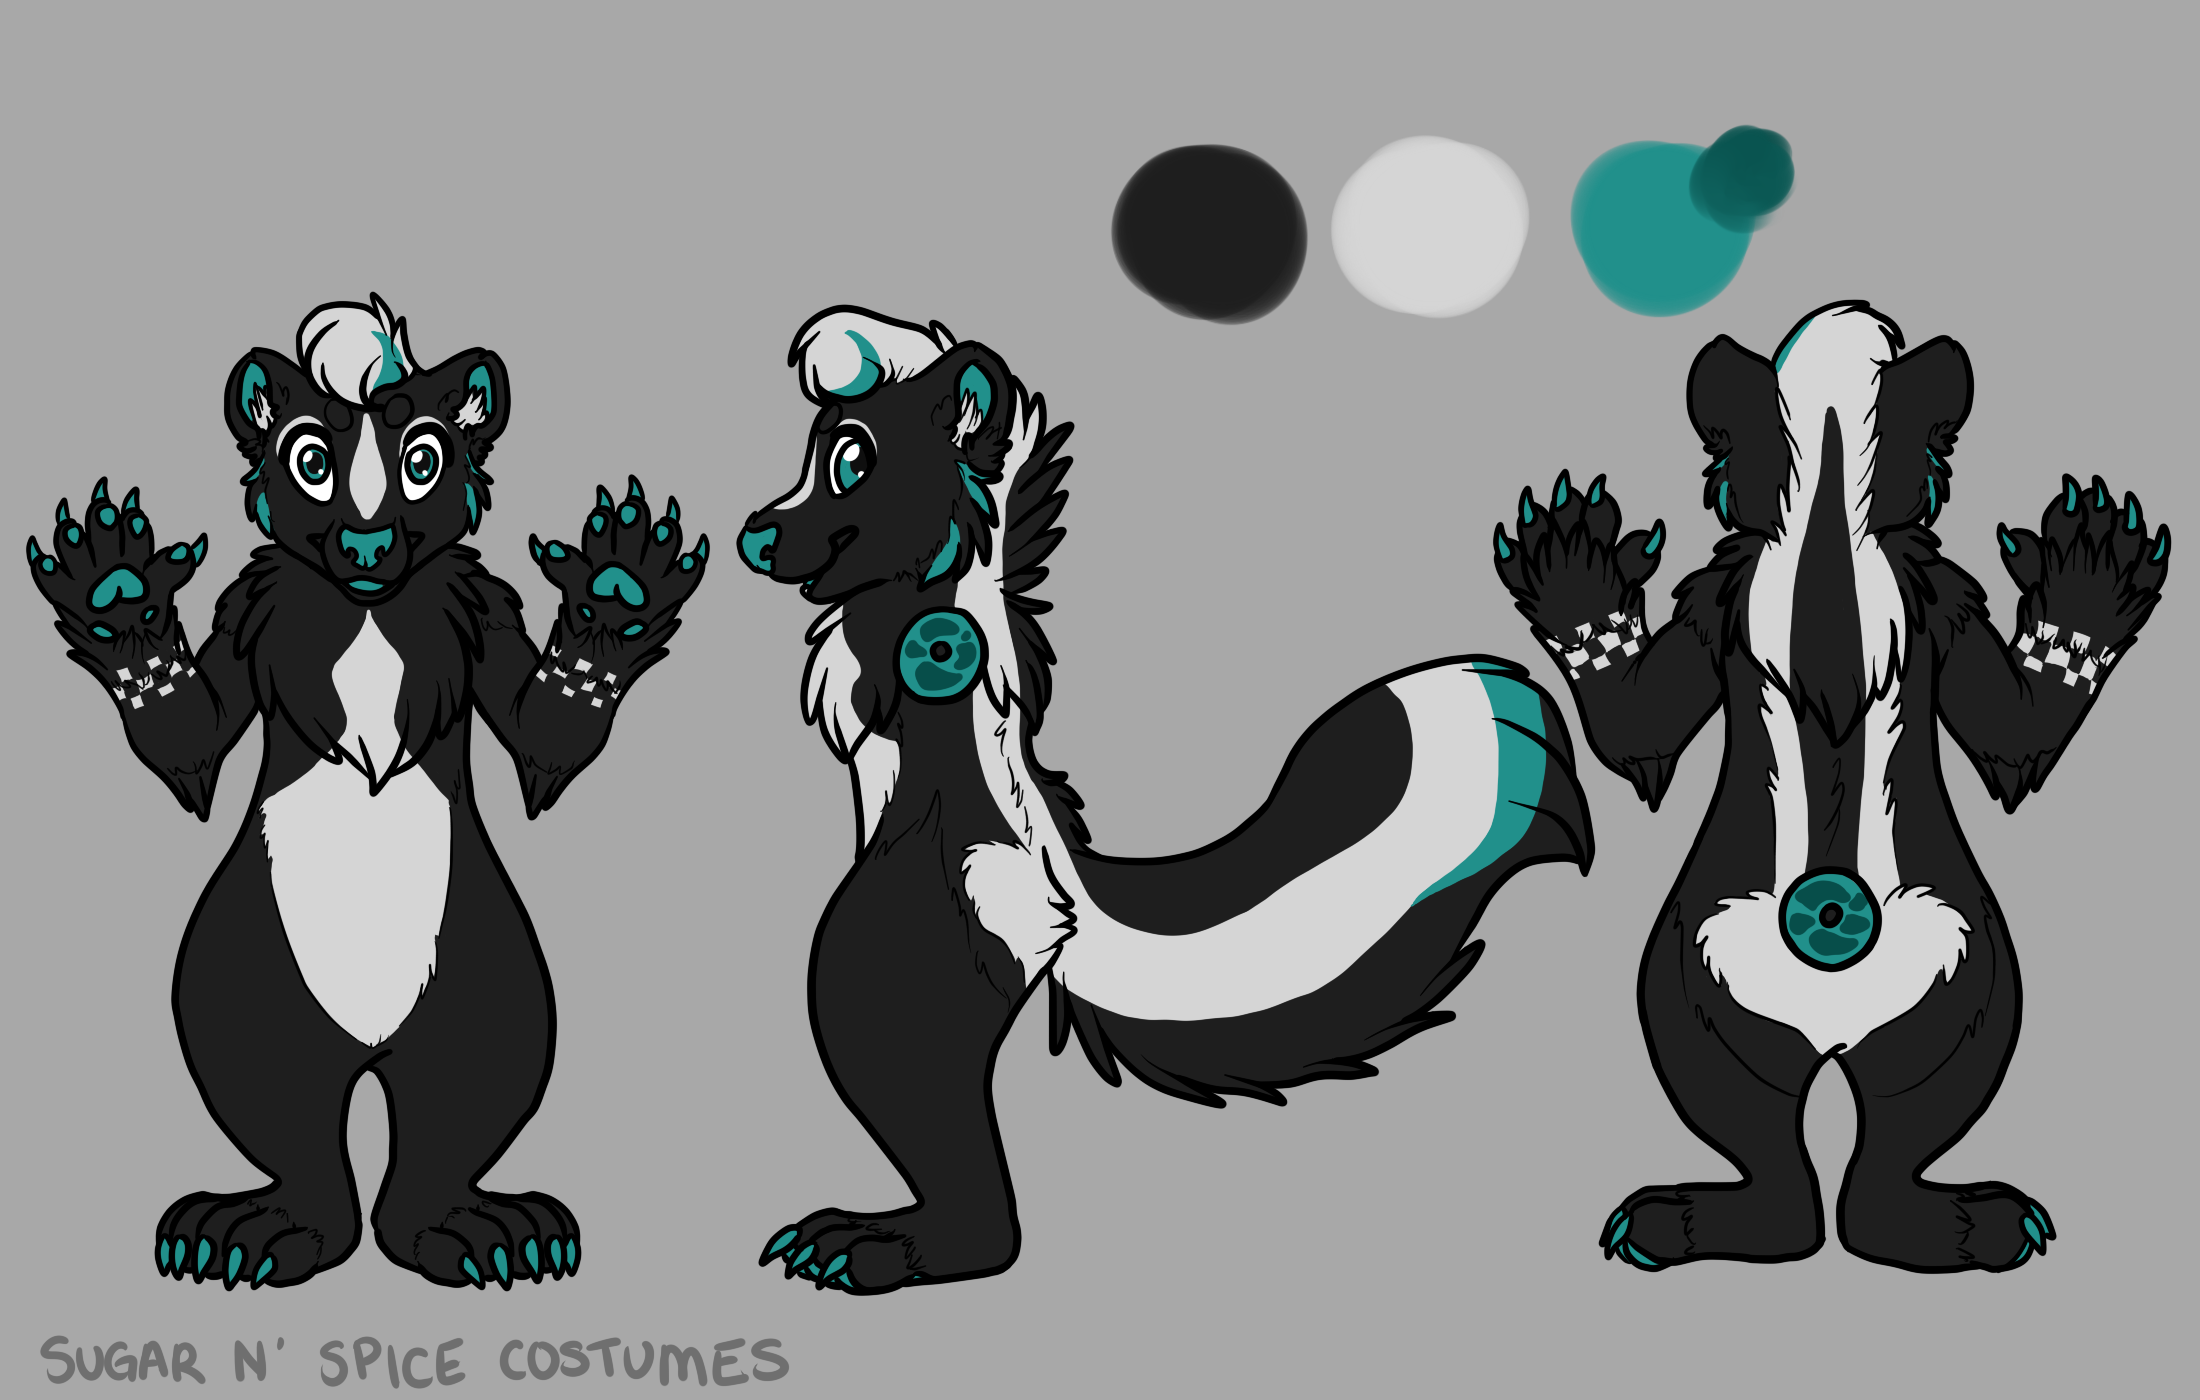 Ska skunk - $1900 Plantigrade Full suit$2100 Didgigrade Full suit. This suit will include a badge from Lilbobleat